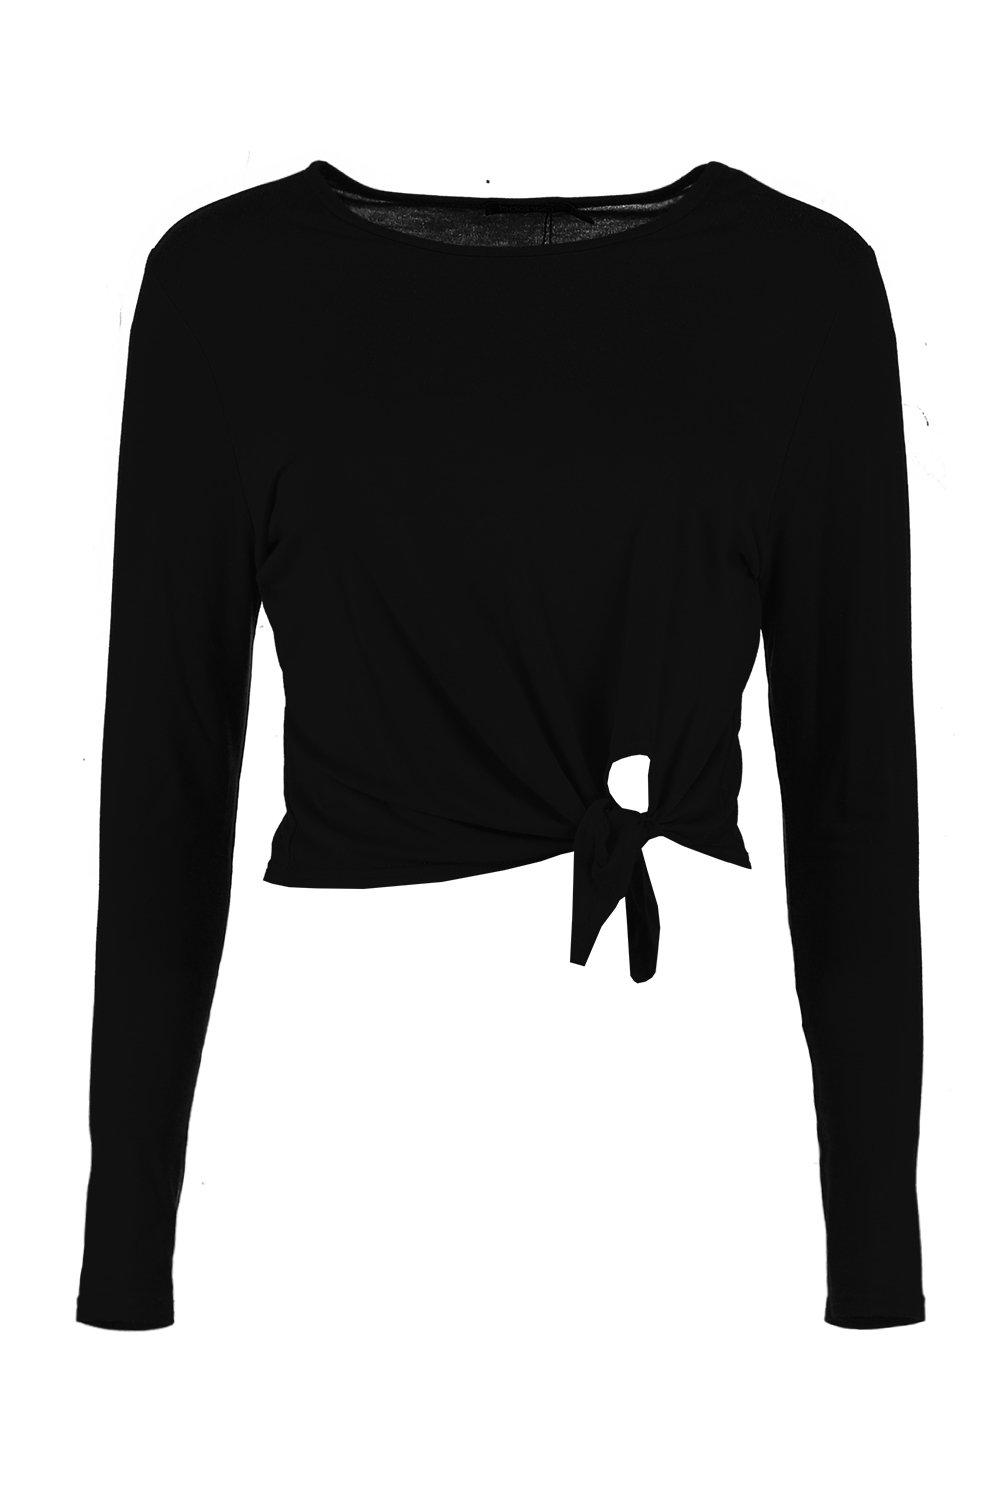 Tie Sleeve Petite Long Front black Top Yvzzxqw